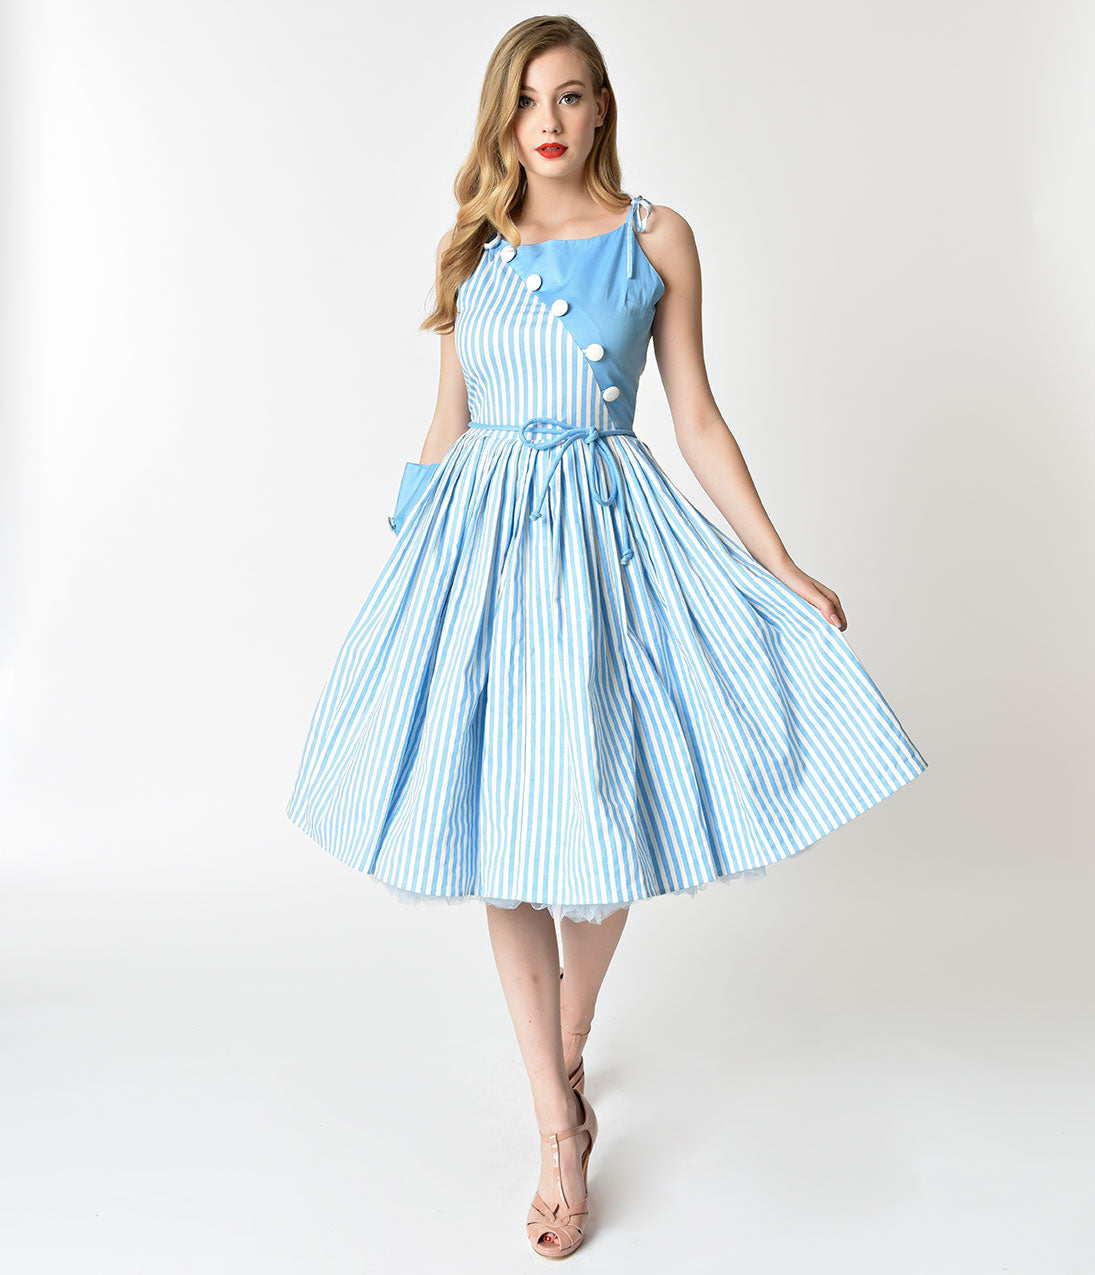 1950s Inspired Fashion: Recreate the Look Unique Vintage 1950S Style Light Blue  White Stripe Hamilton Swing Dress $98.00 AT vintagedancer.com